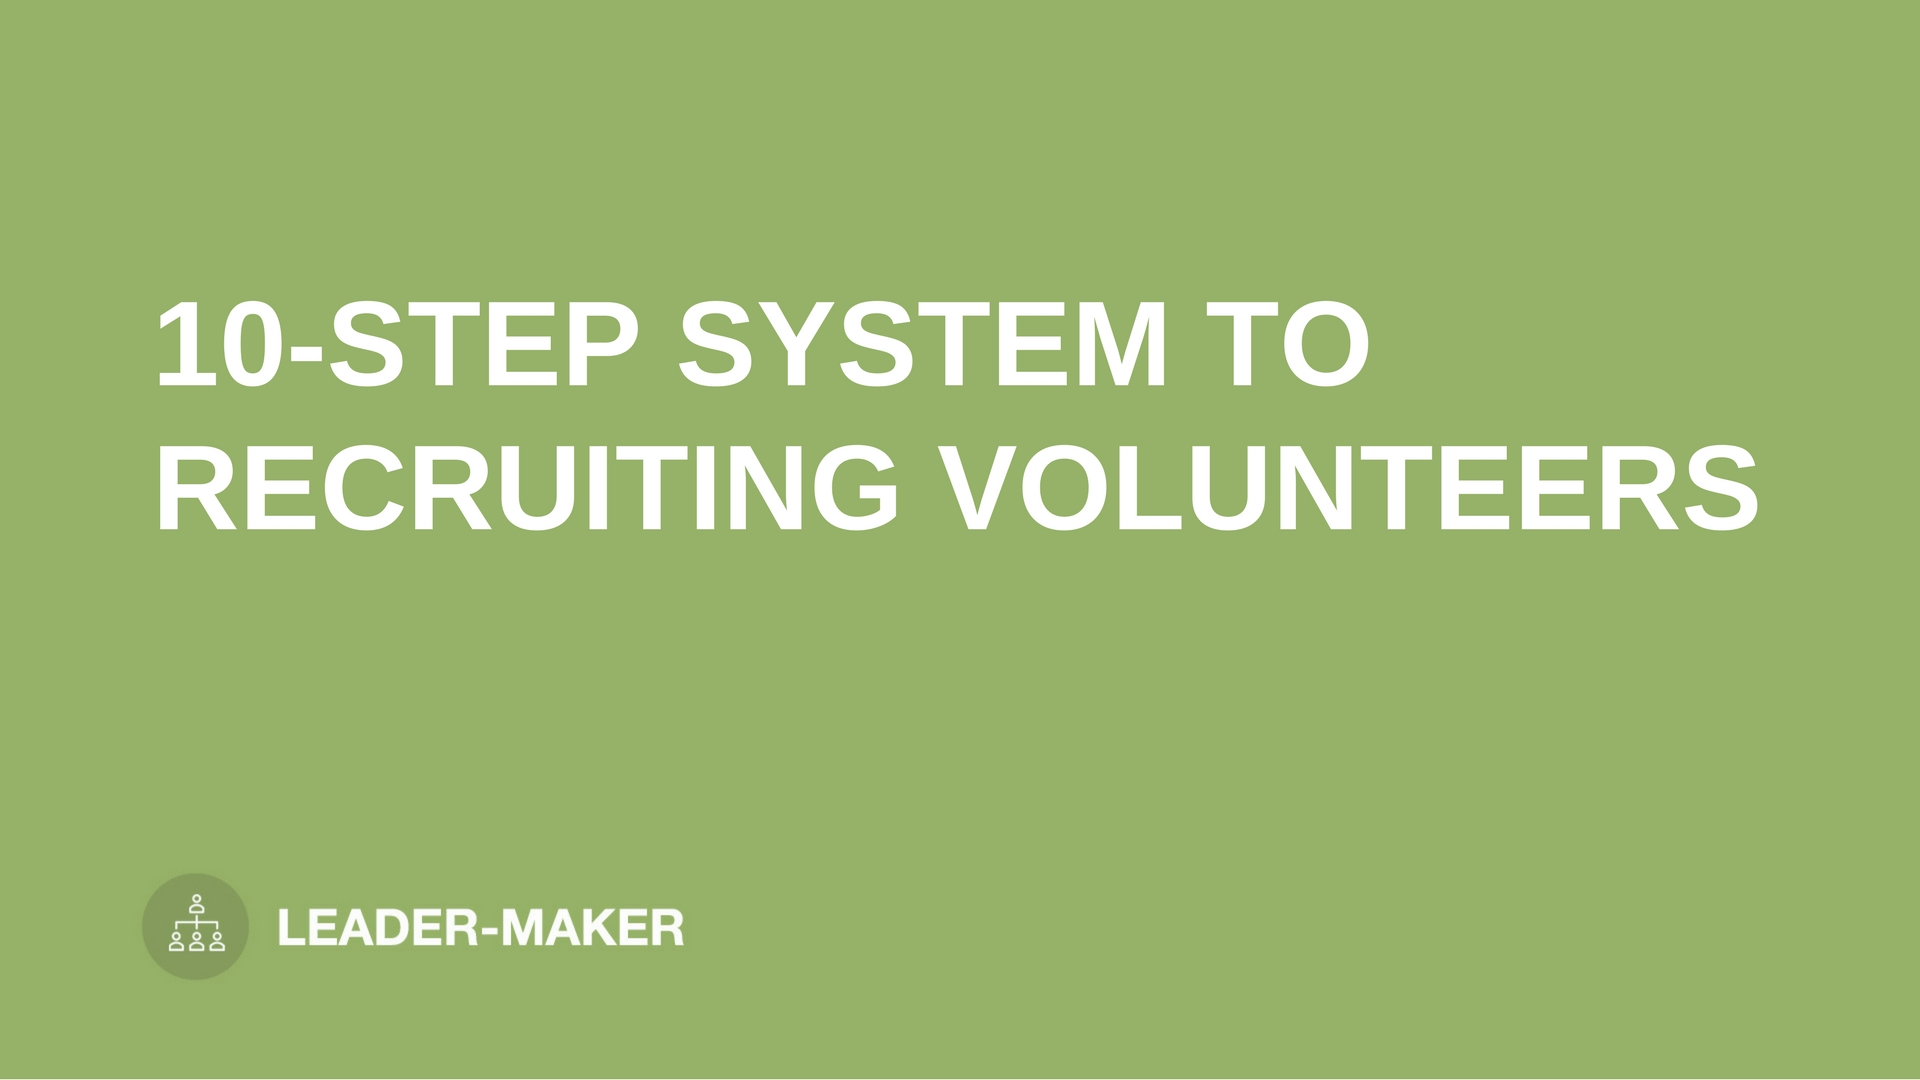 """text """"10-STEP SYSTEM TO RECRUITING VOLUNTEERS"""" on green background leaders.church"""